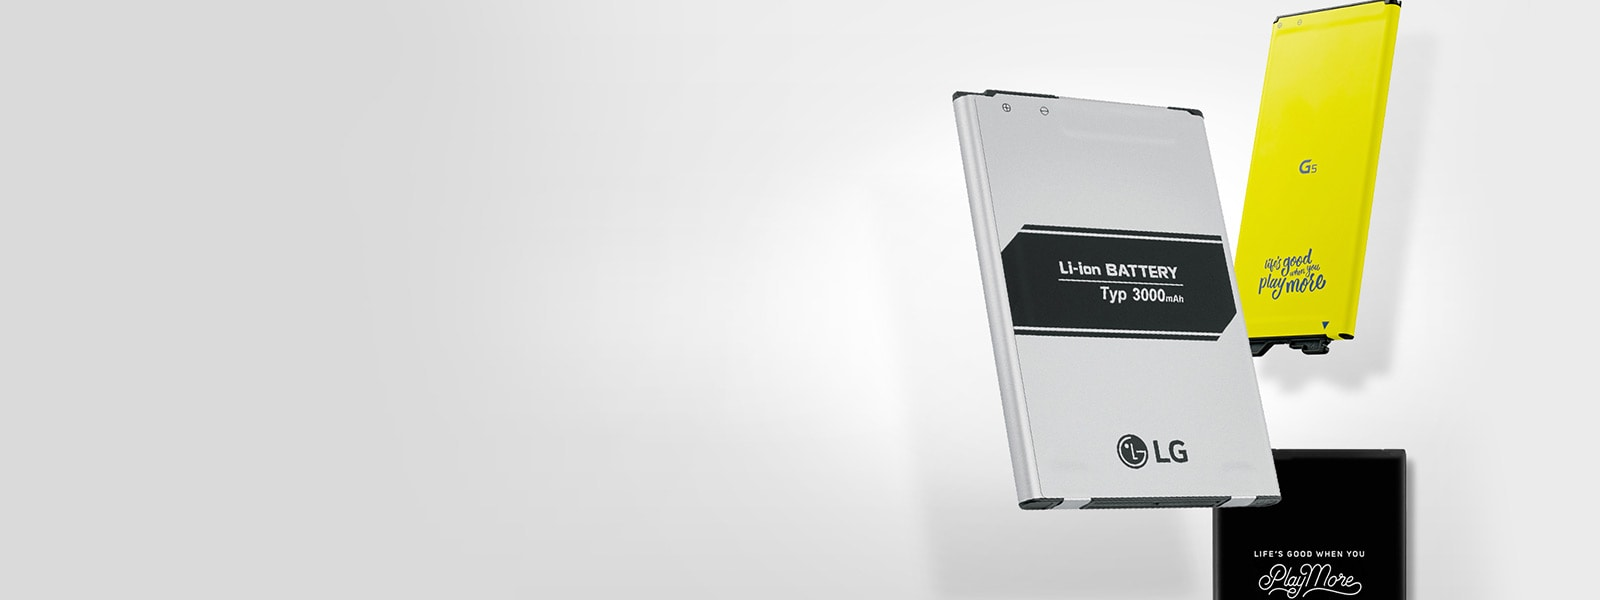 LG Cell Phone Batteries: Removable Batteries & more | LG USA